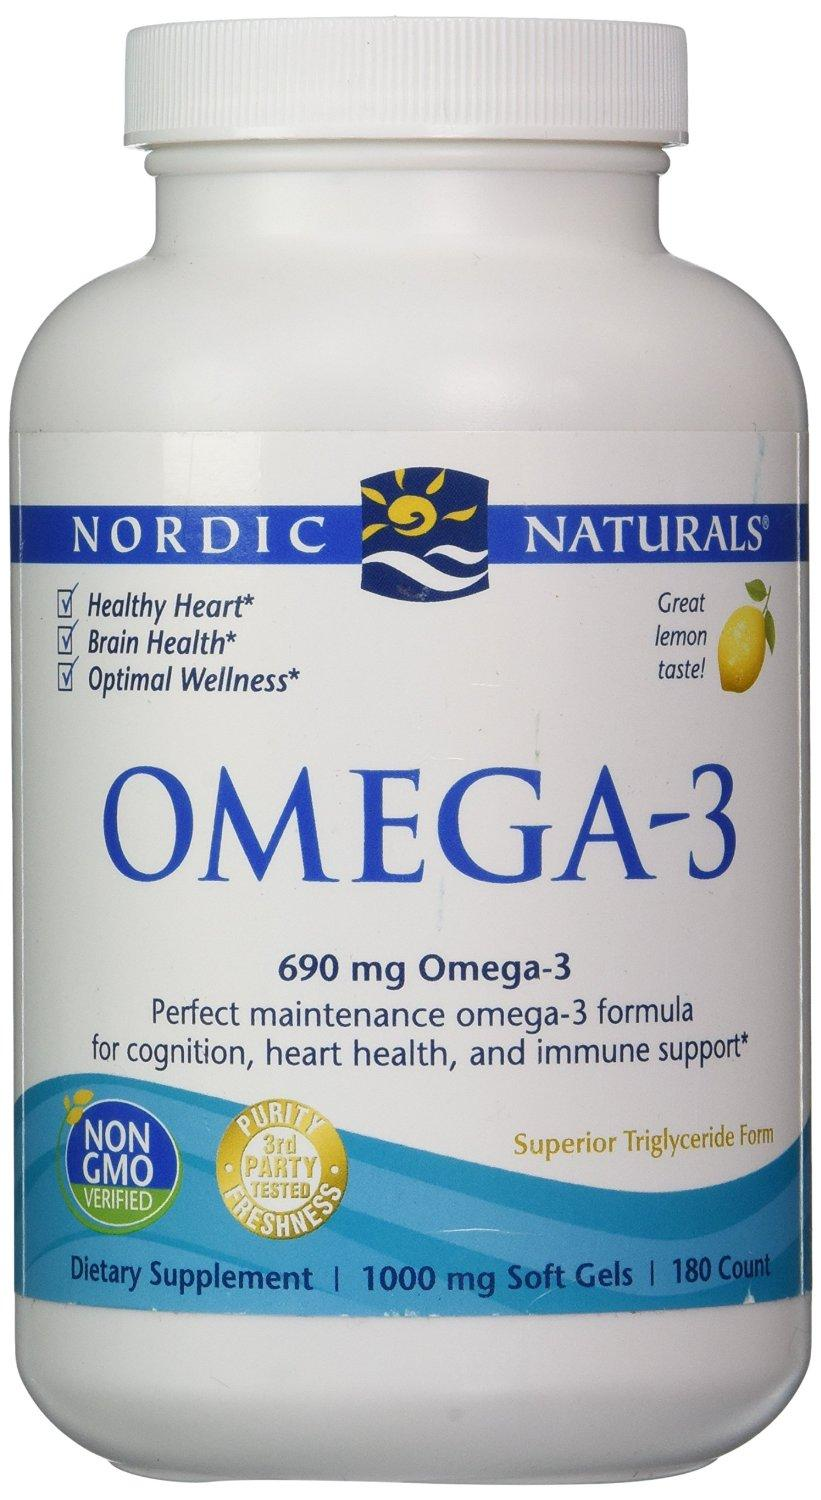 Nordic Naturals - Omega-3, Cognition, Heart Health, and Immune Support, 180 Count